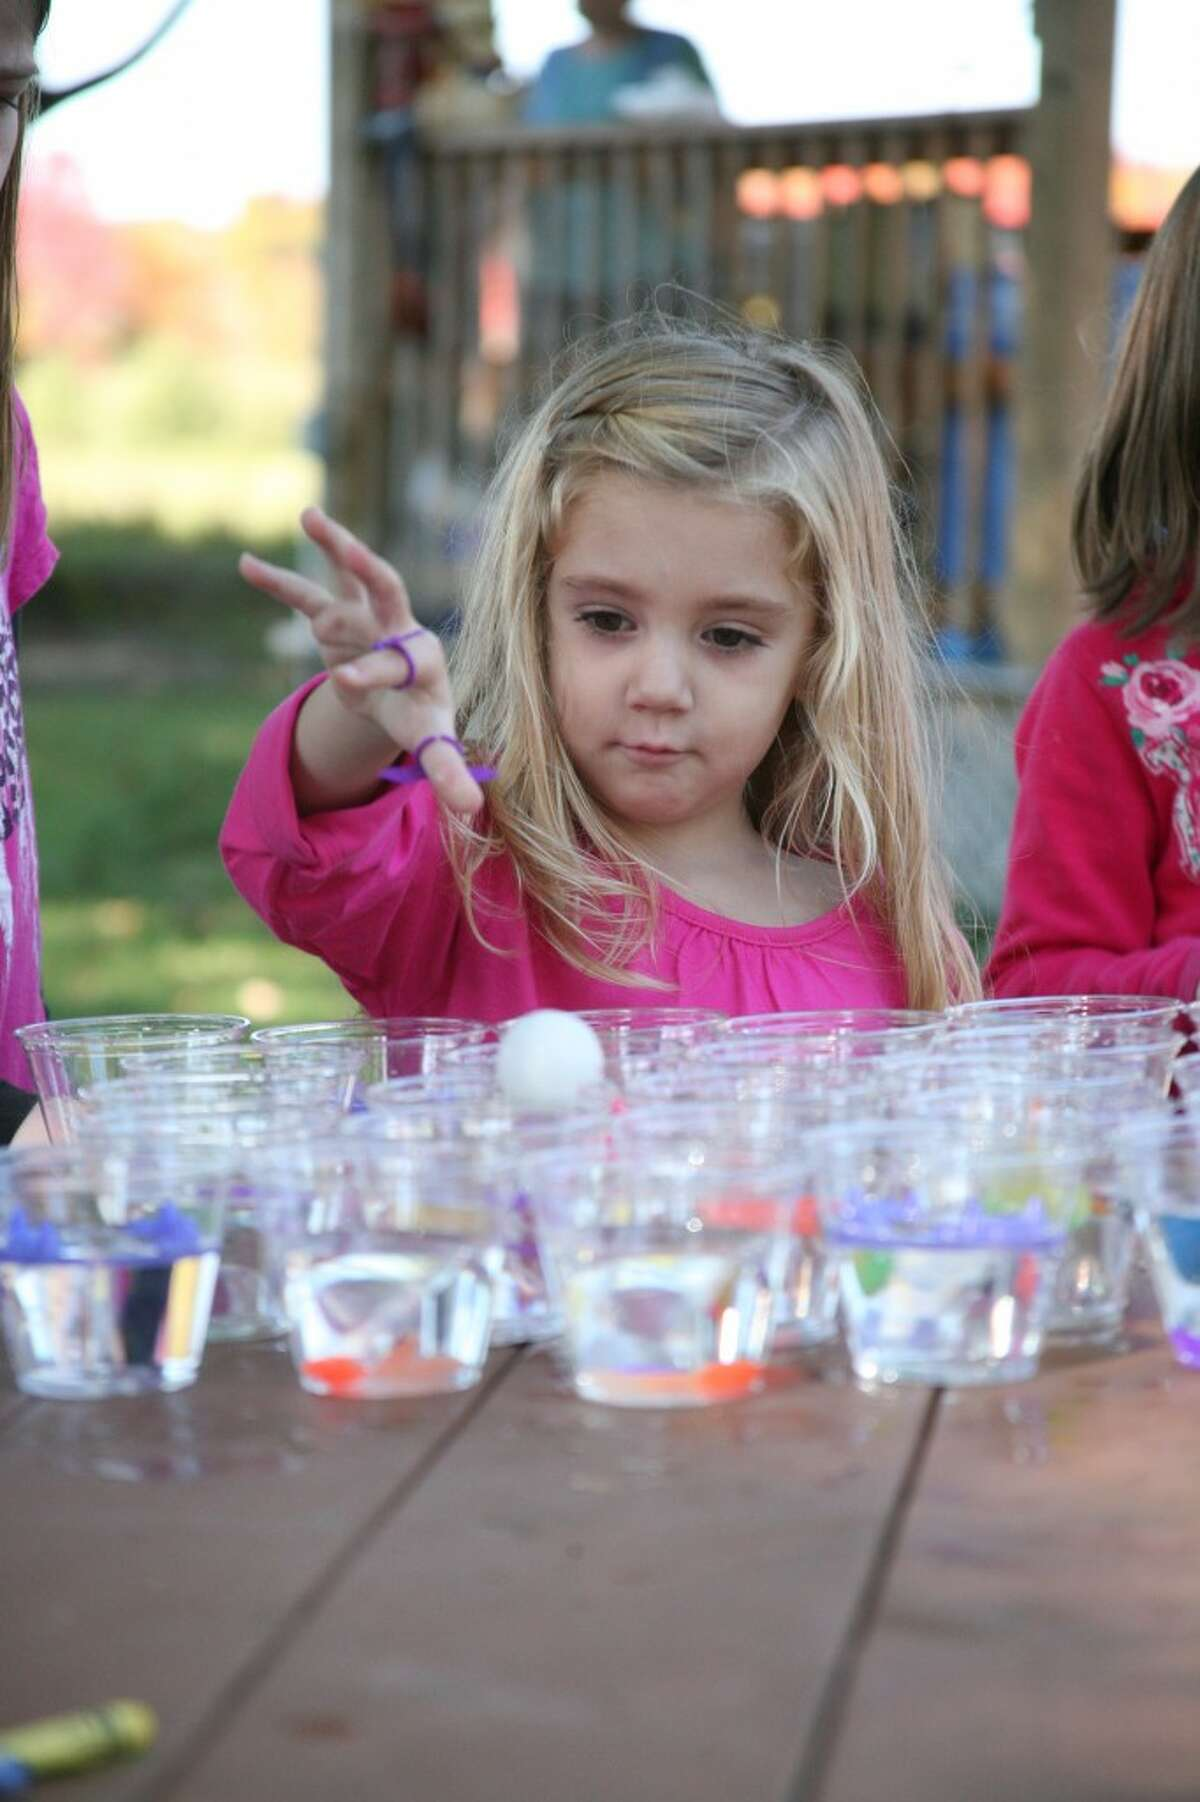 KID'S GAMES: Chloe Tyler, 3, plays a game during the third annual Hersey Harvest Food Drive Festival on Saturday at Mosaic Park.